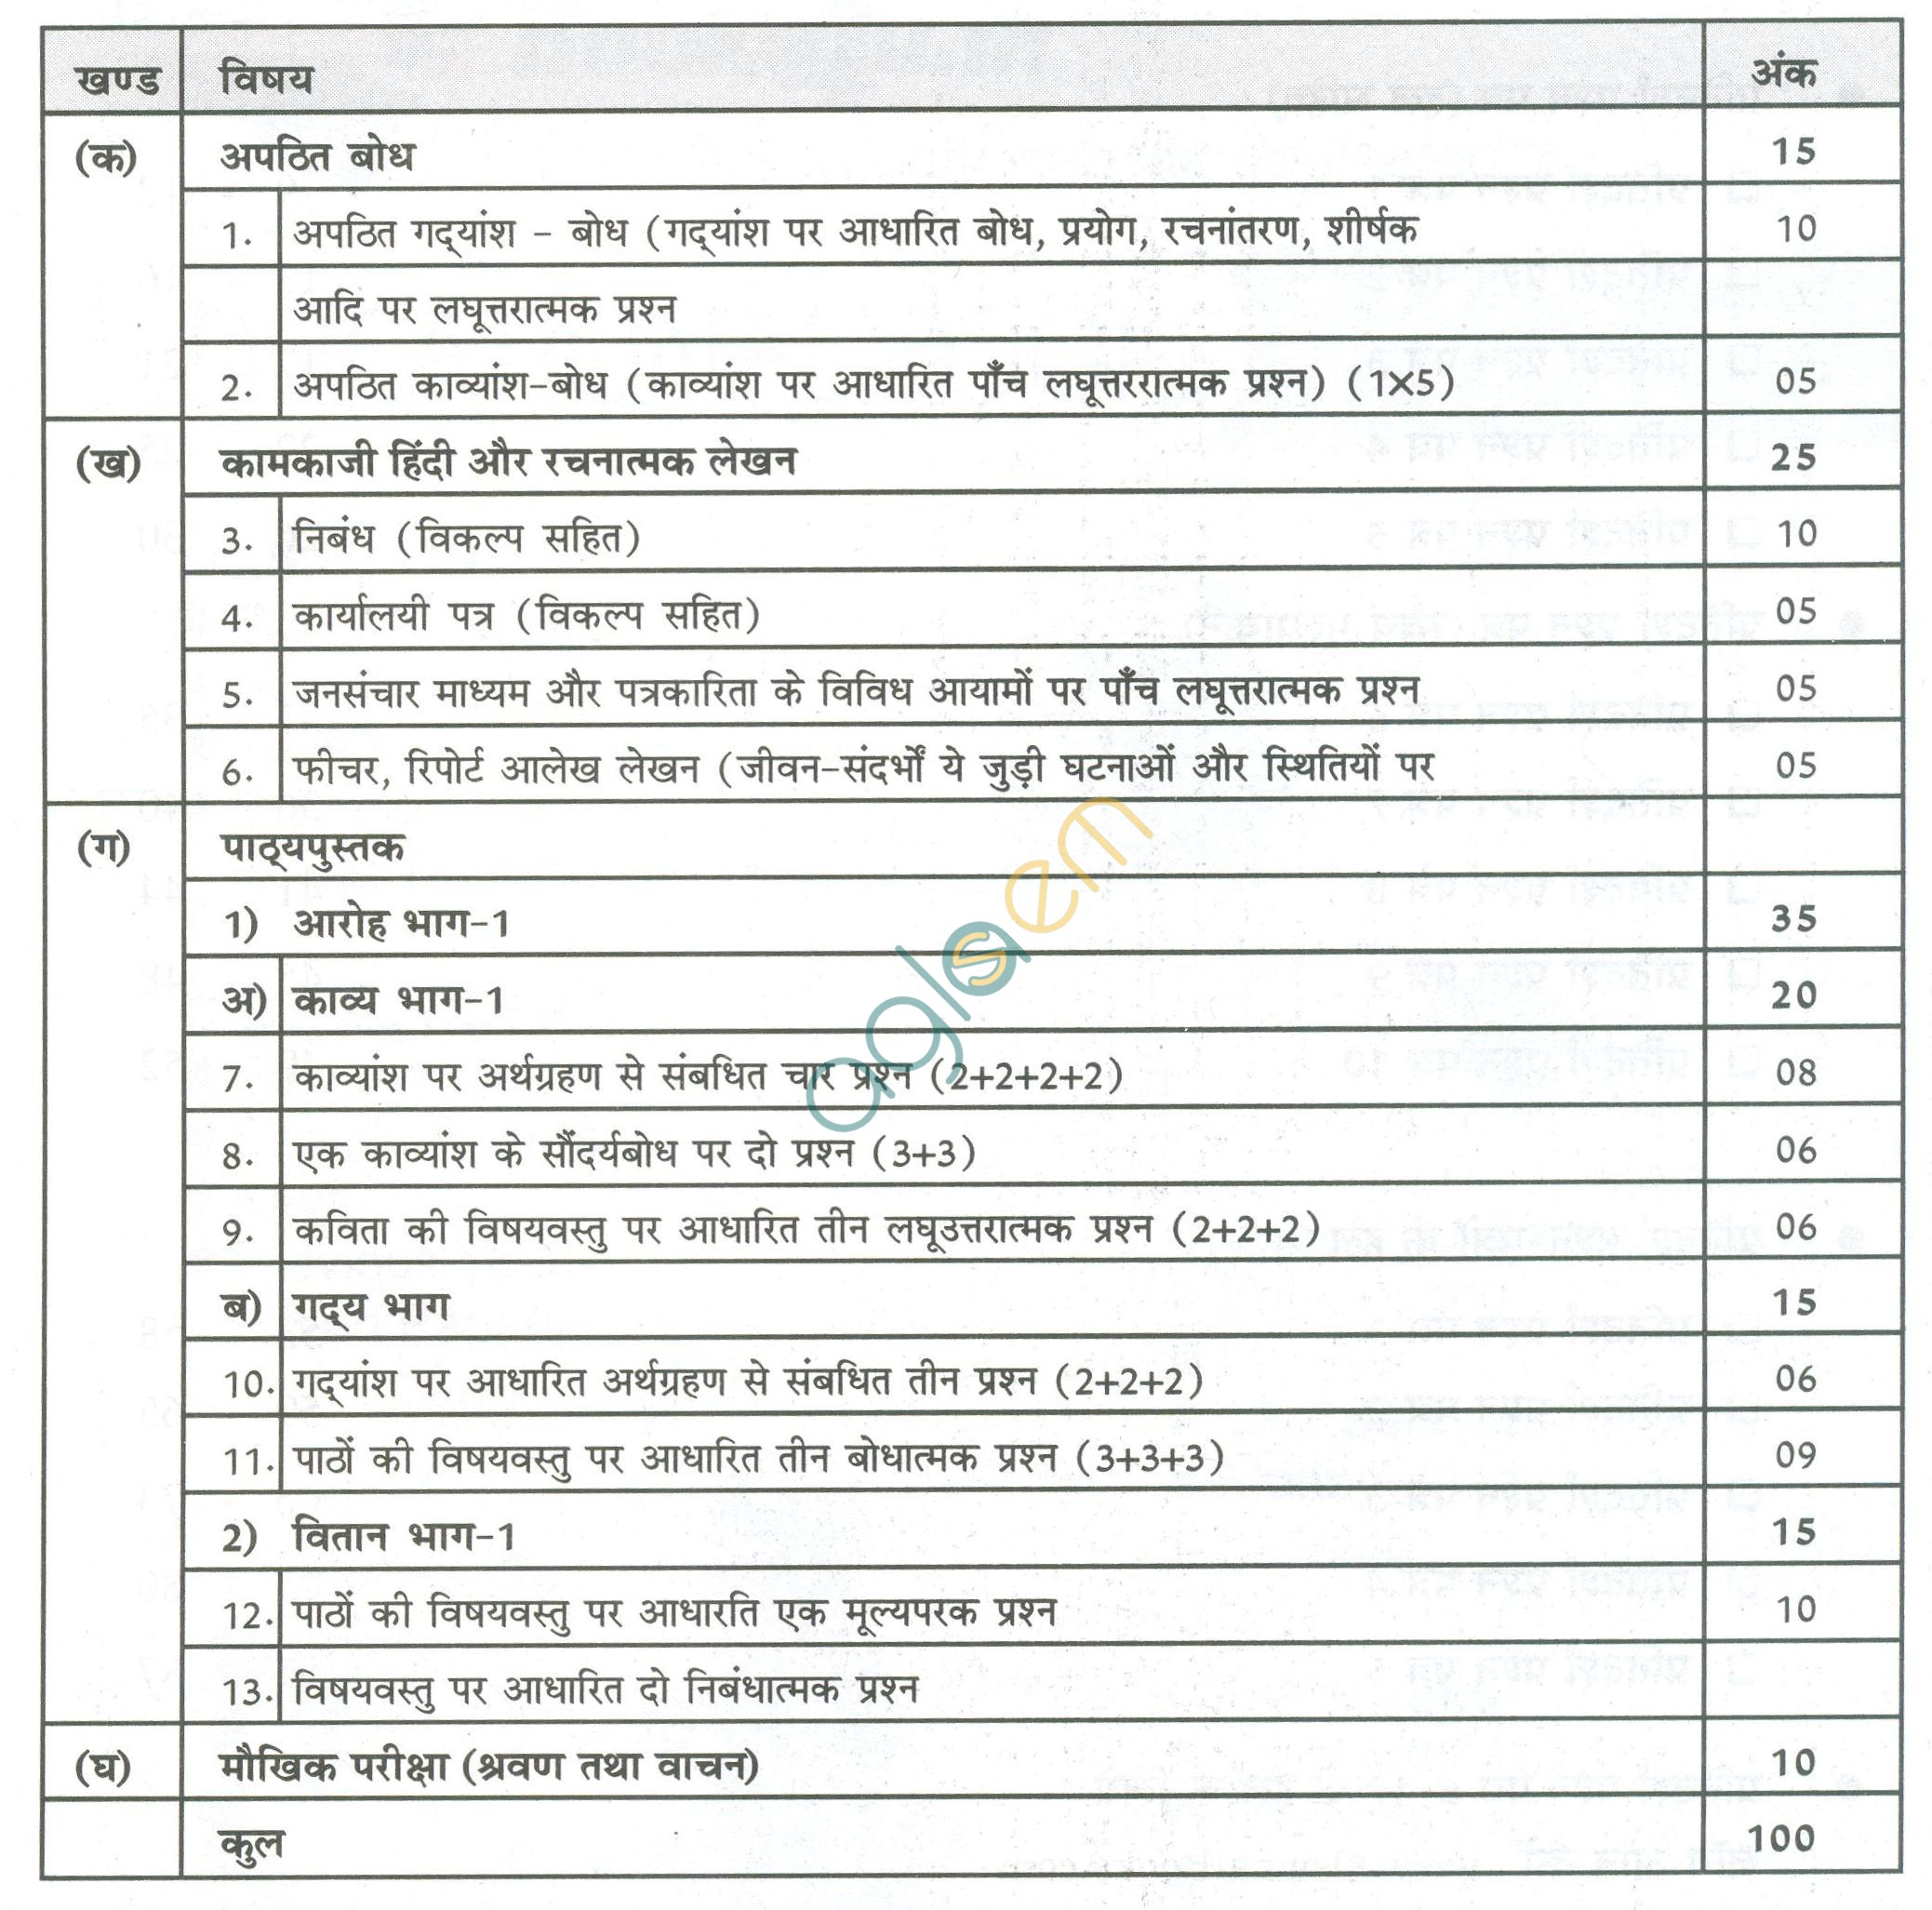 Cbse sample papers for class 11 hindi solved aglasem schools cbse sample papers for class 11 hindi solved malvernweather